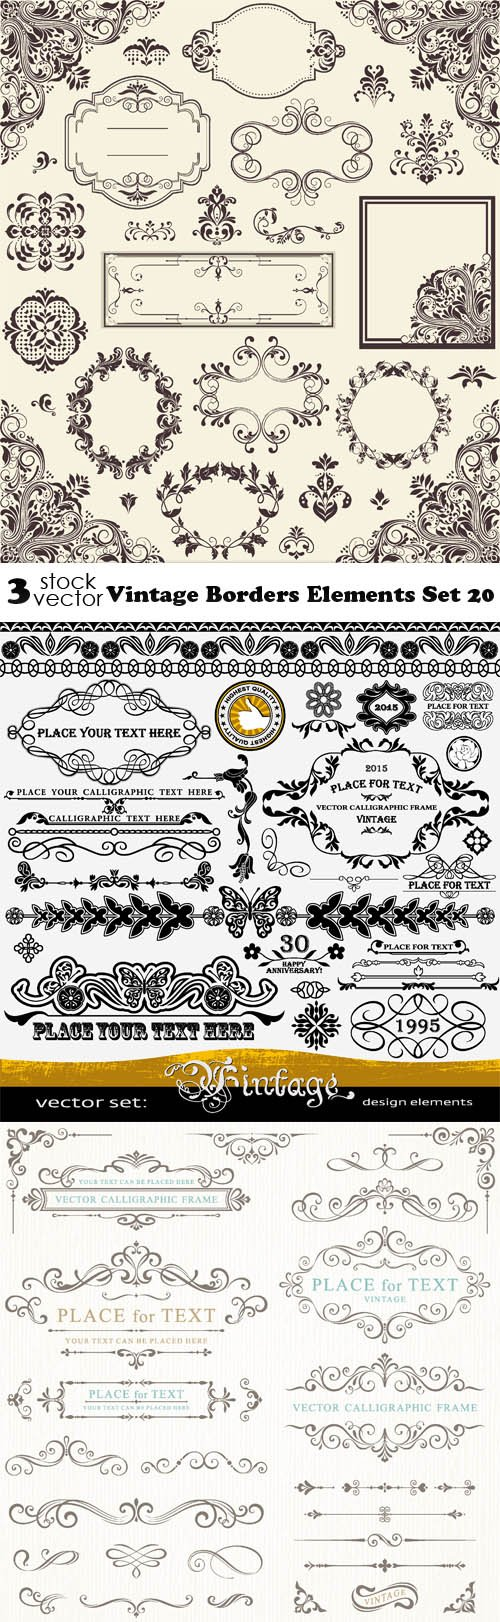 Vectors - Vintage Borders Elements Set 20